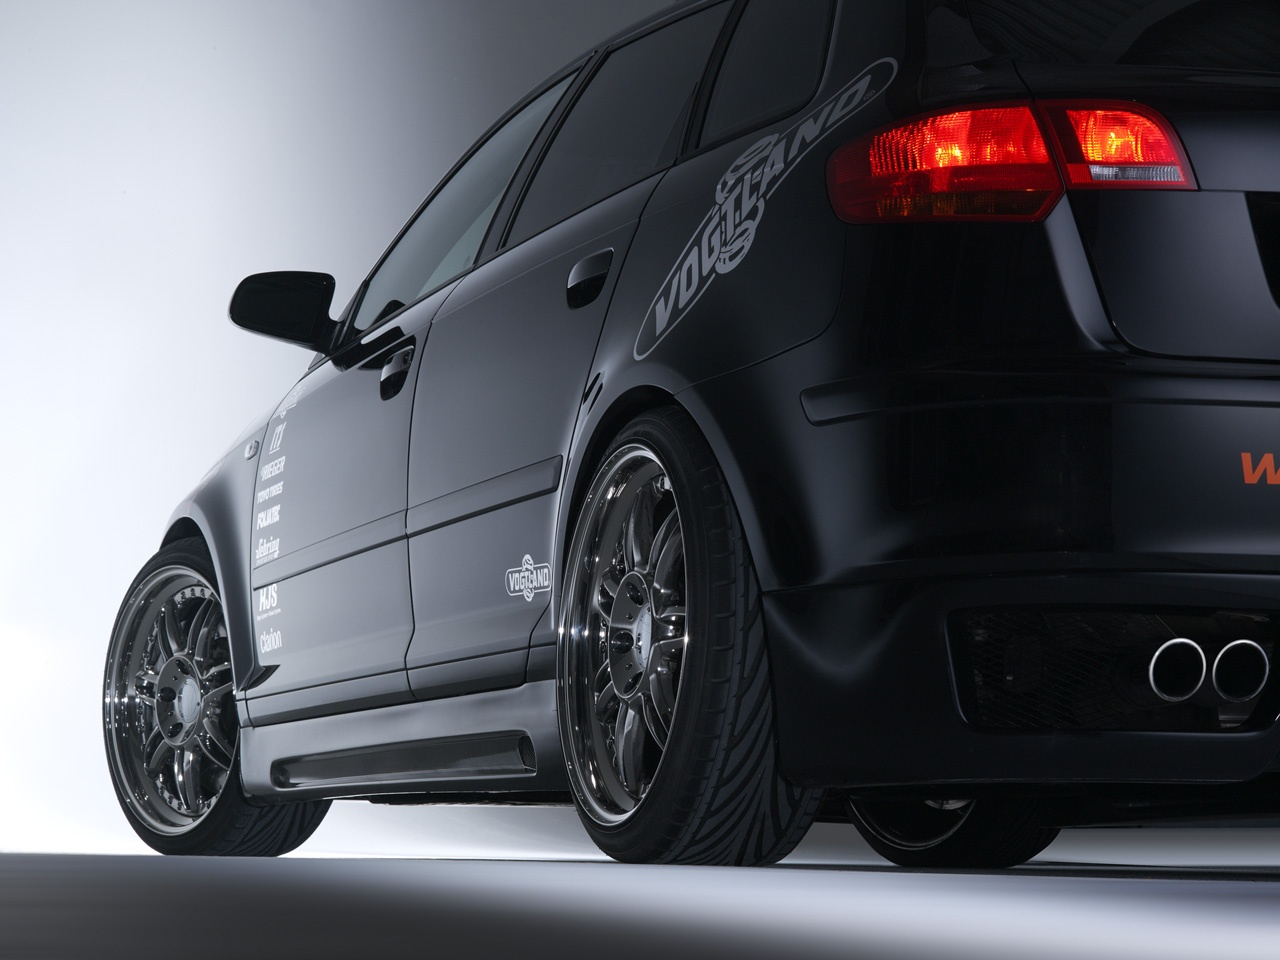 Audi image Audi A3 HD wallpapers and backgrounds photos